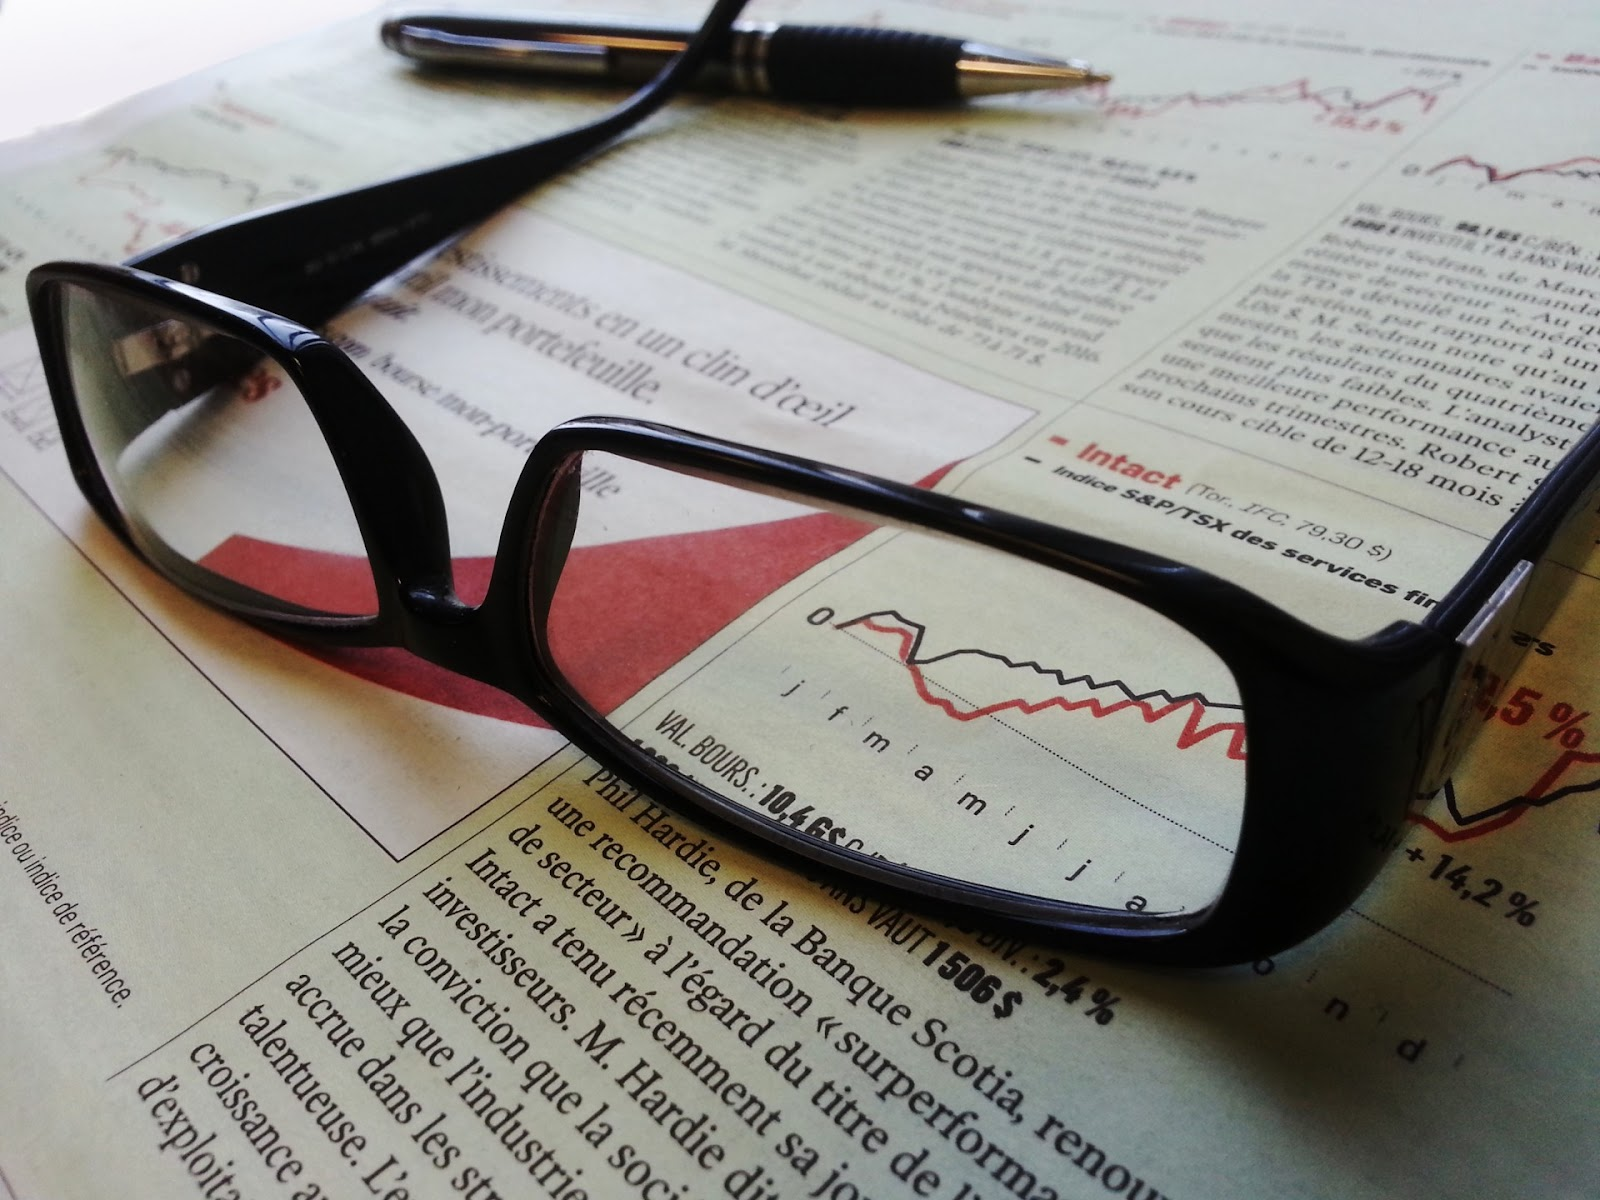 glasses-and-pen-on-a-newspaper.jpg